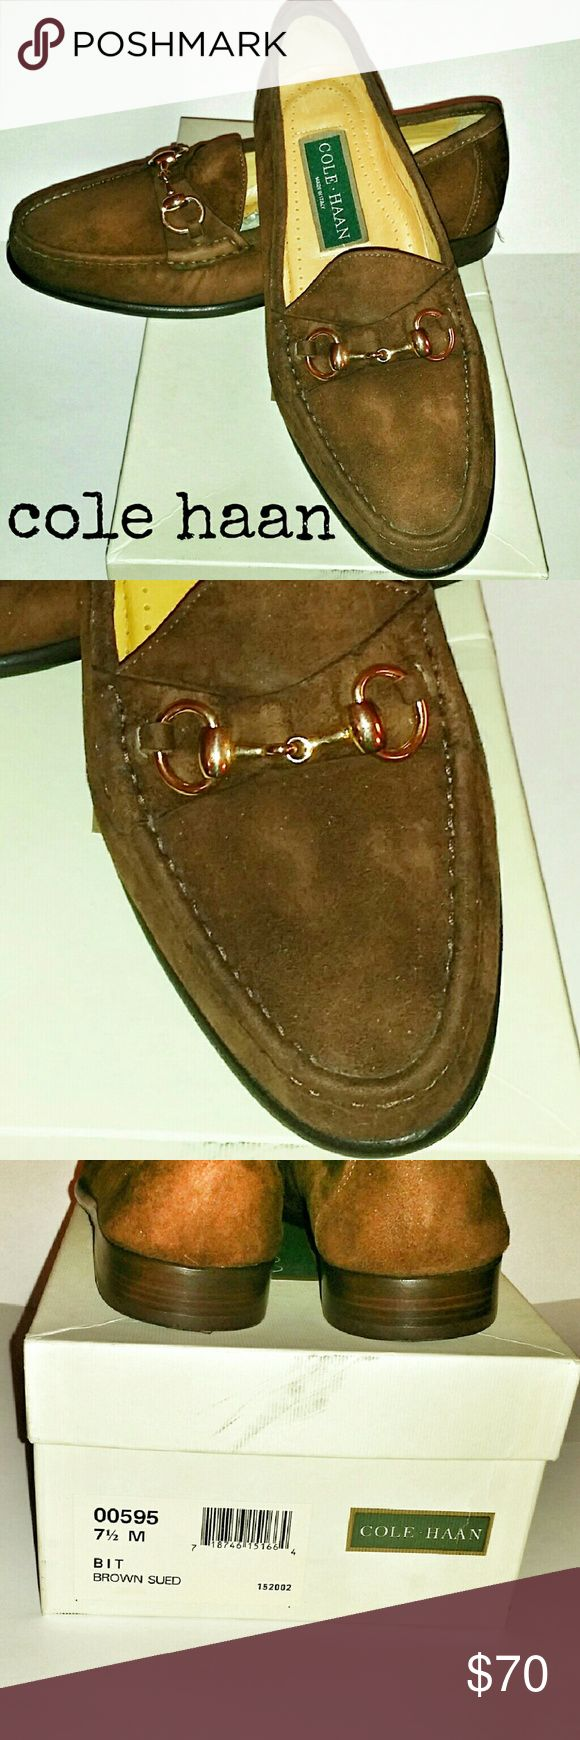 Cole Haan Men's Suede Loafers Fabulous never been worn. Soft suede with gold horsebit buckle. Cole Haan Shoes Loafers & Slip-Ons